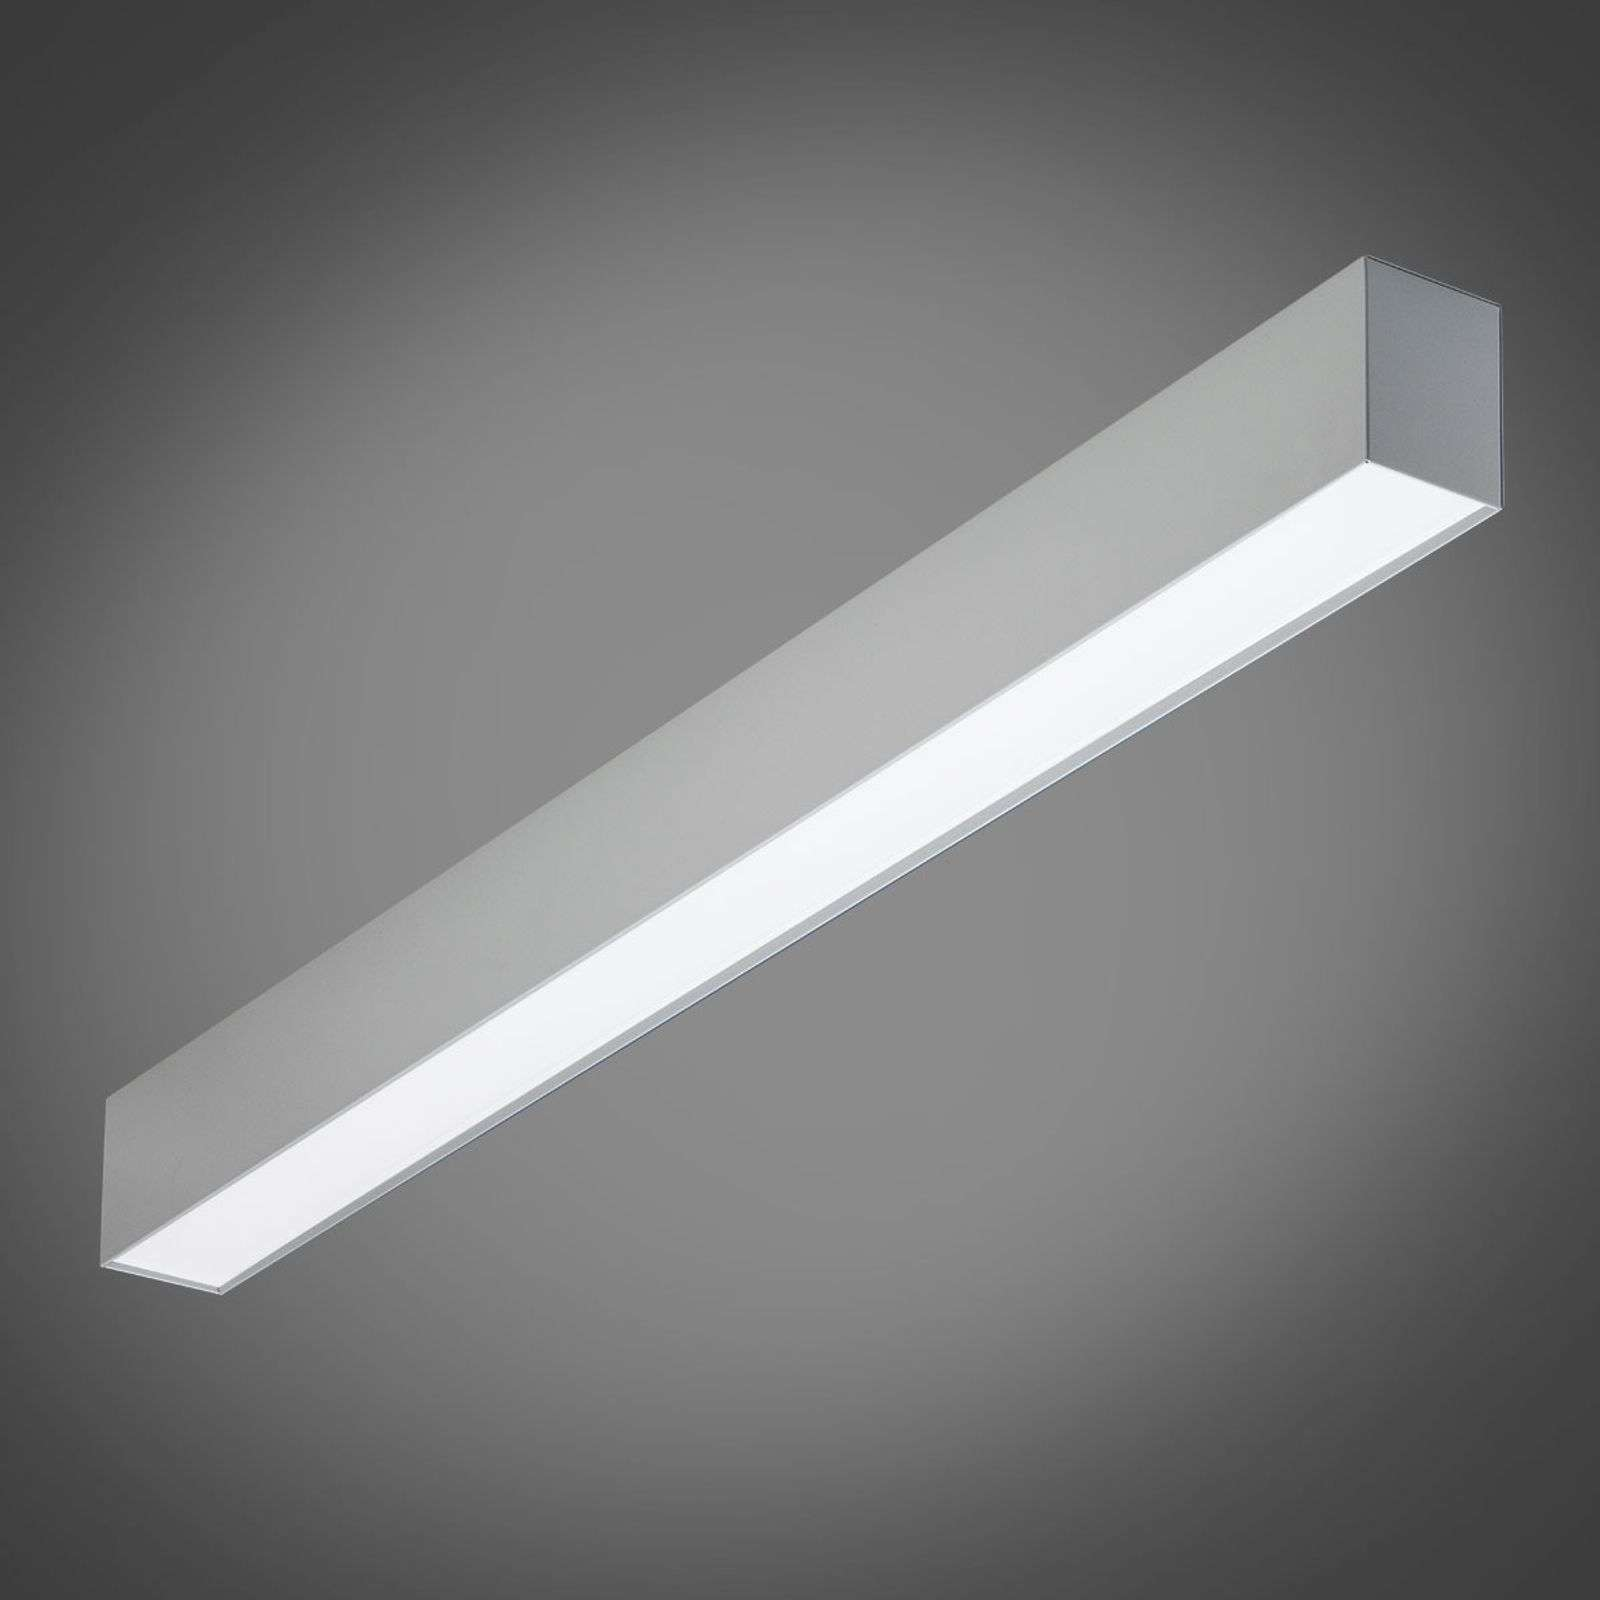 Eficiente lámpara de pared LED LIPW075 3000K